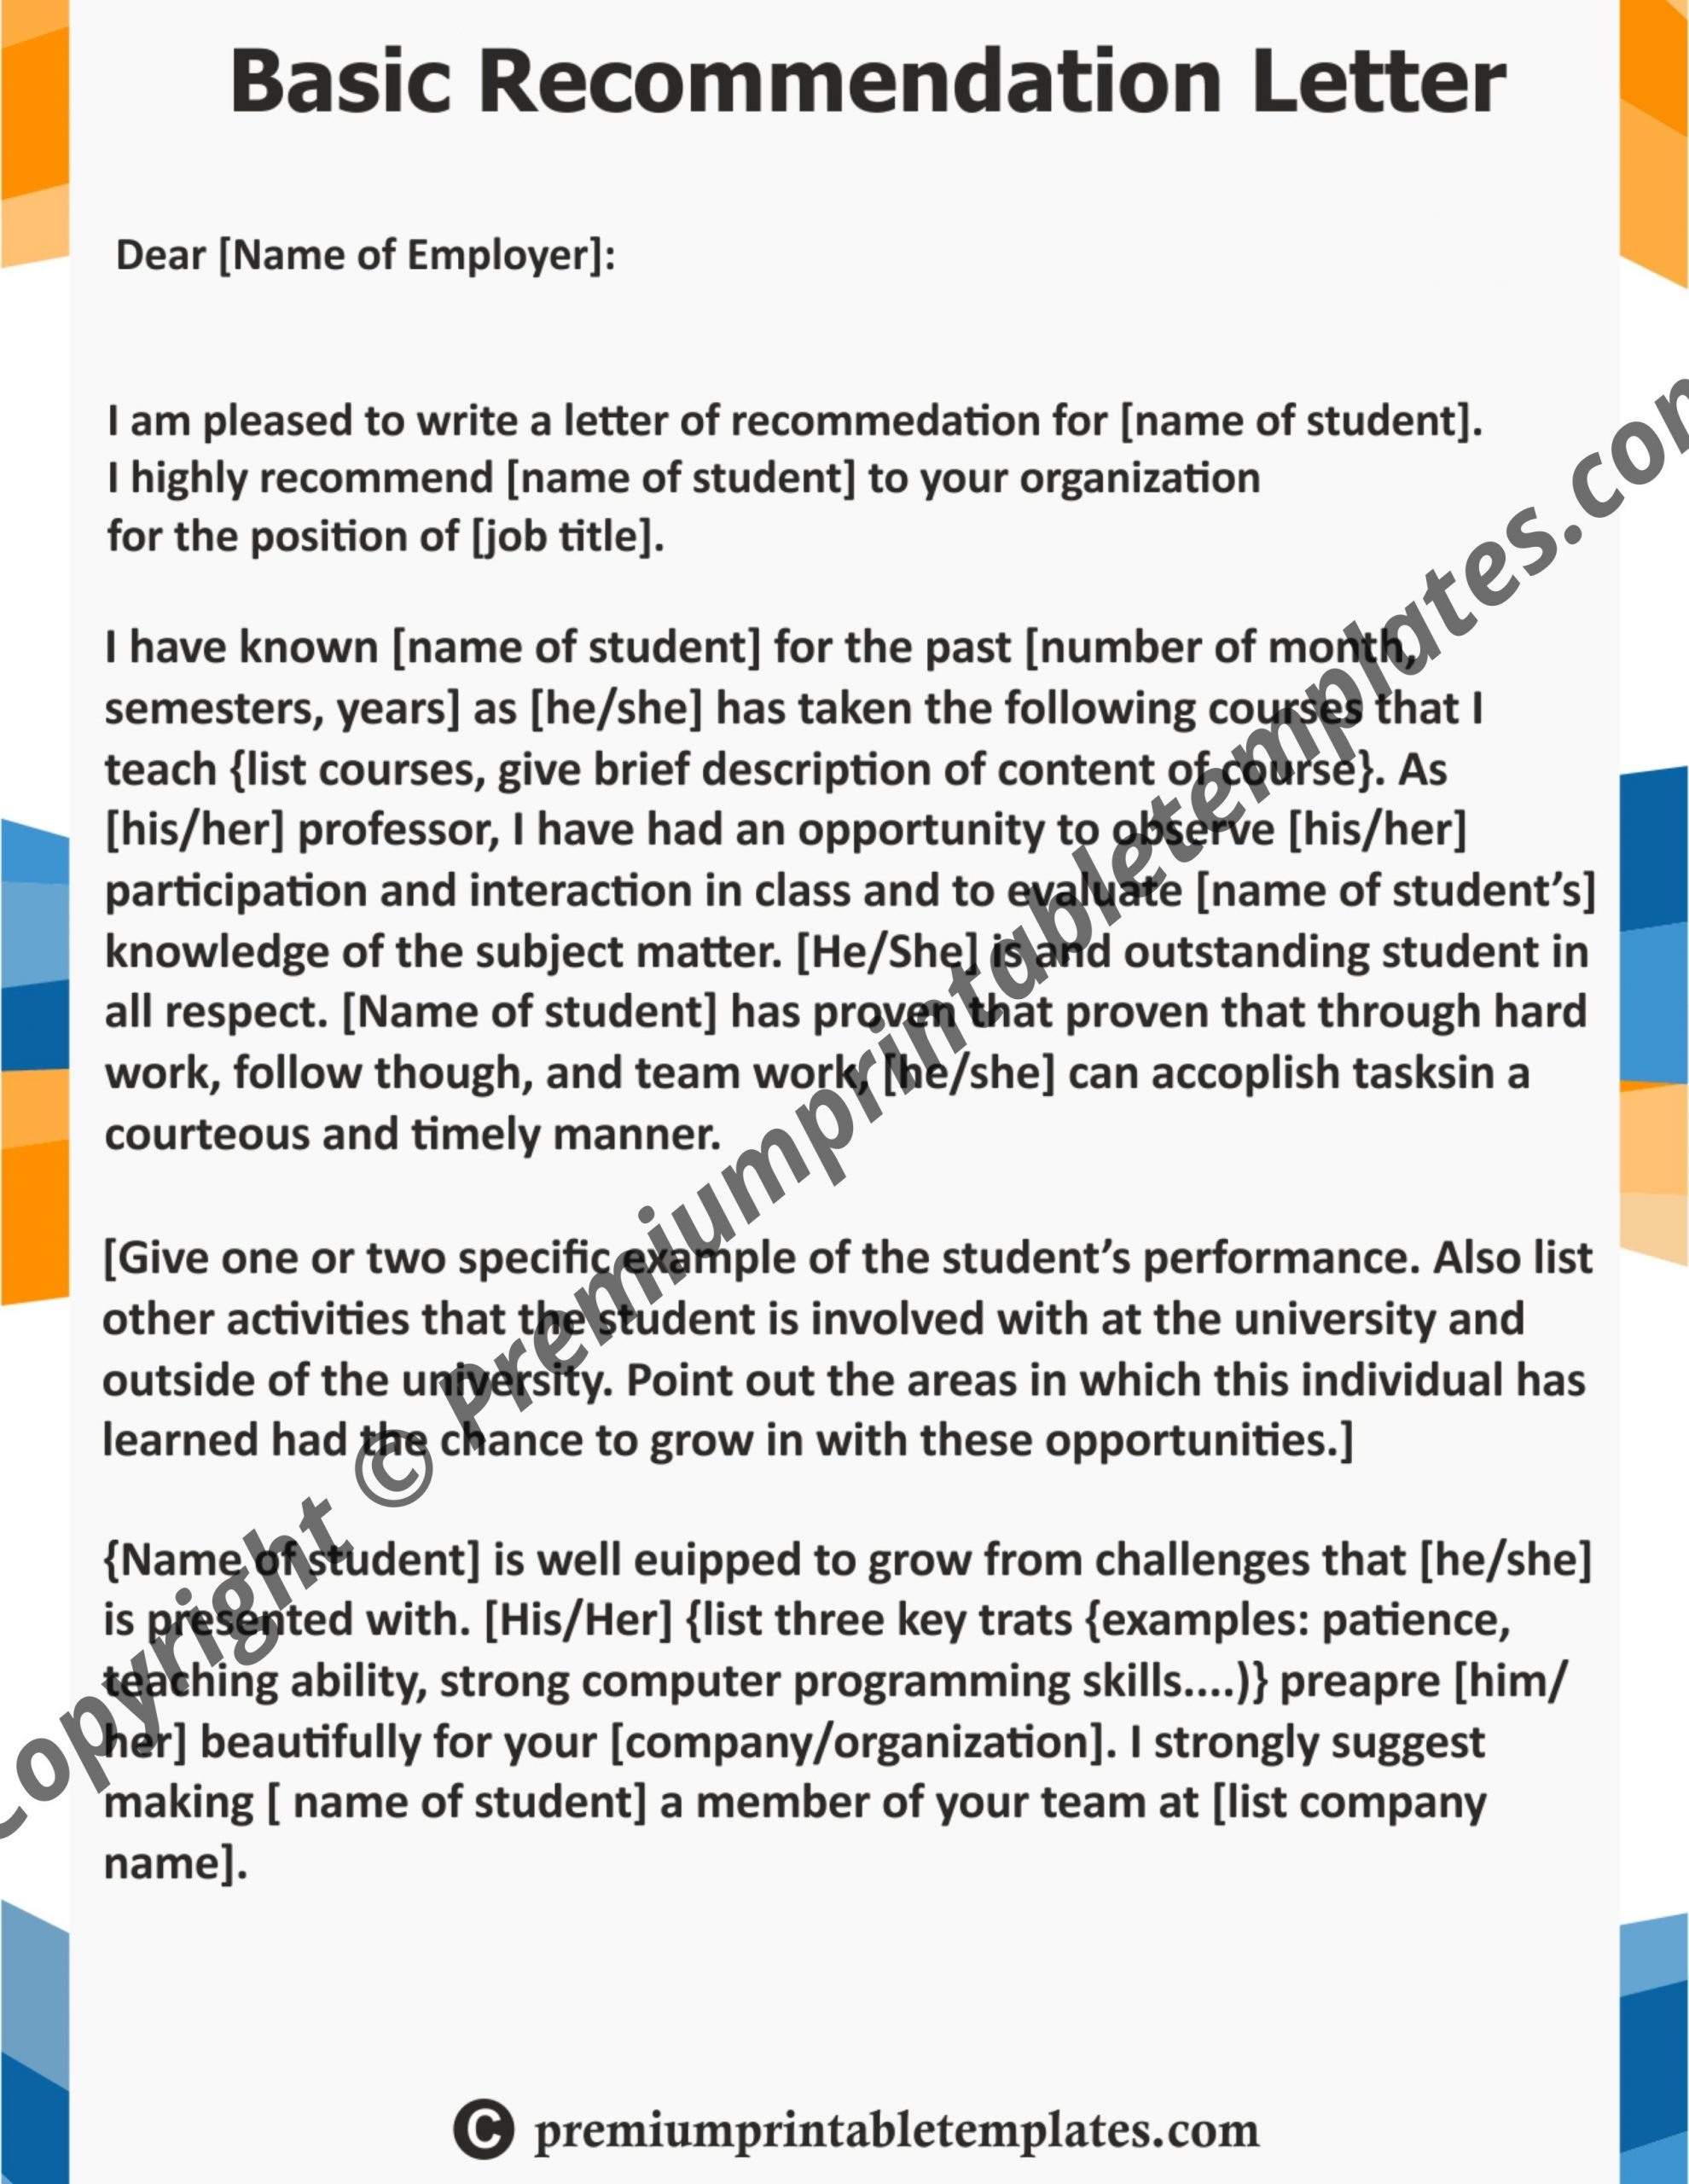 Letter Of Recommendation Templates from premiumprintabletemplates.com